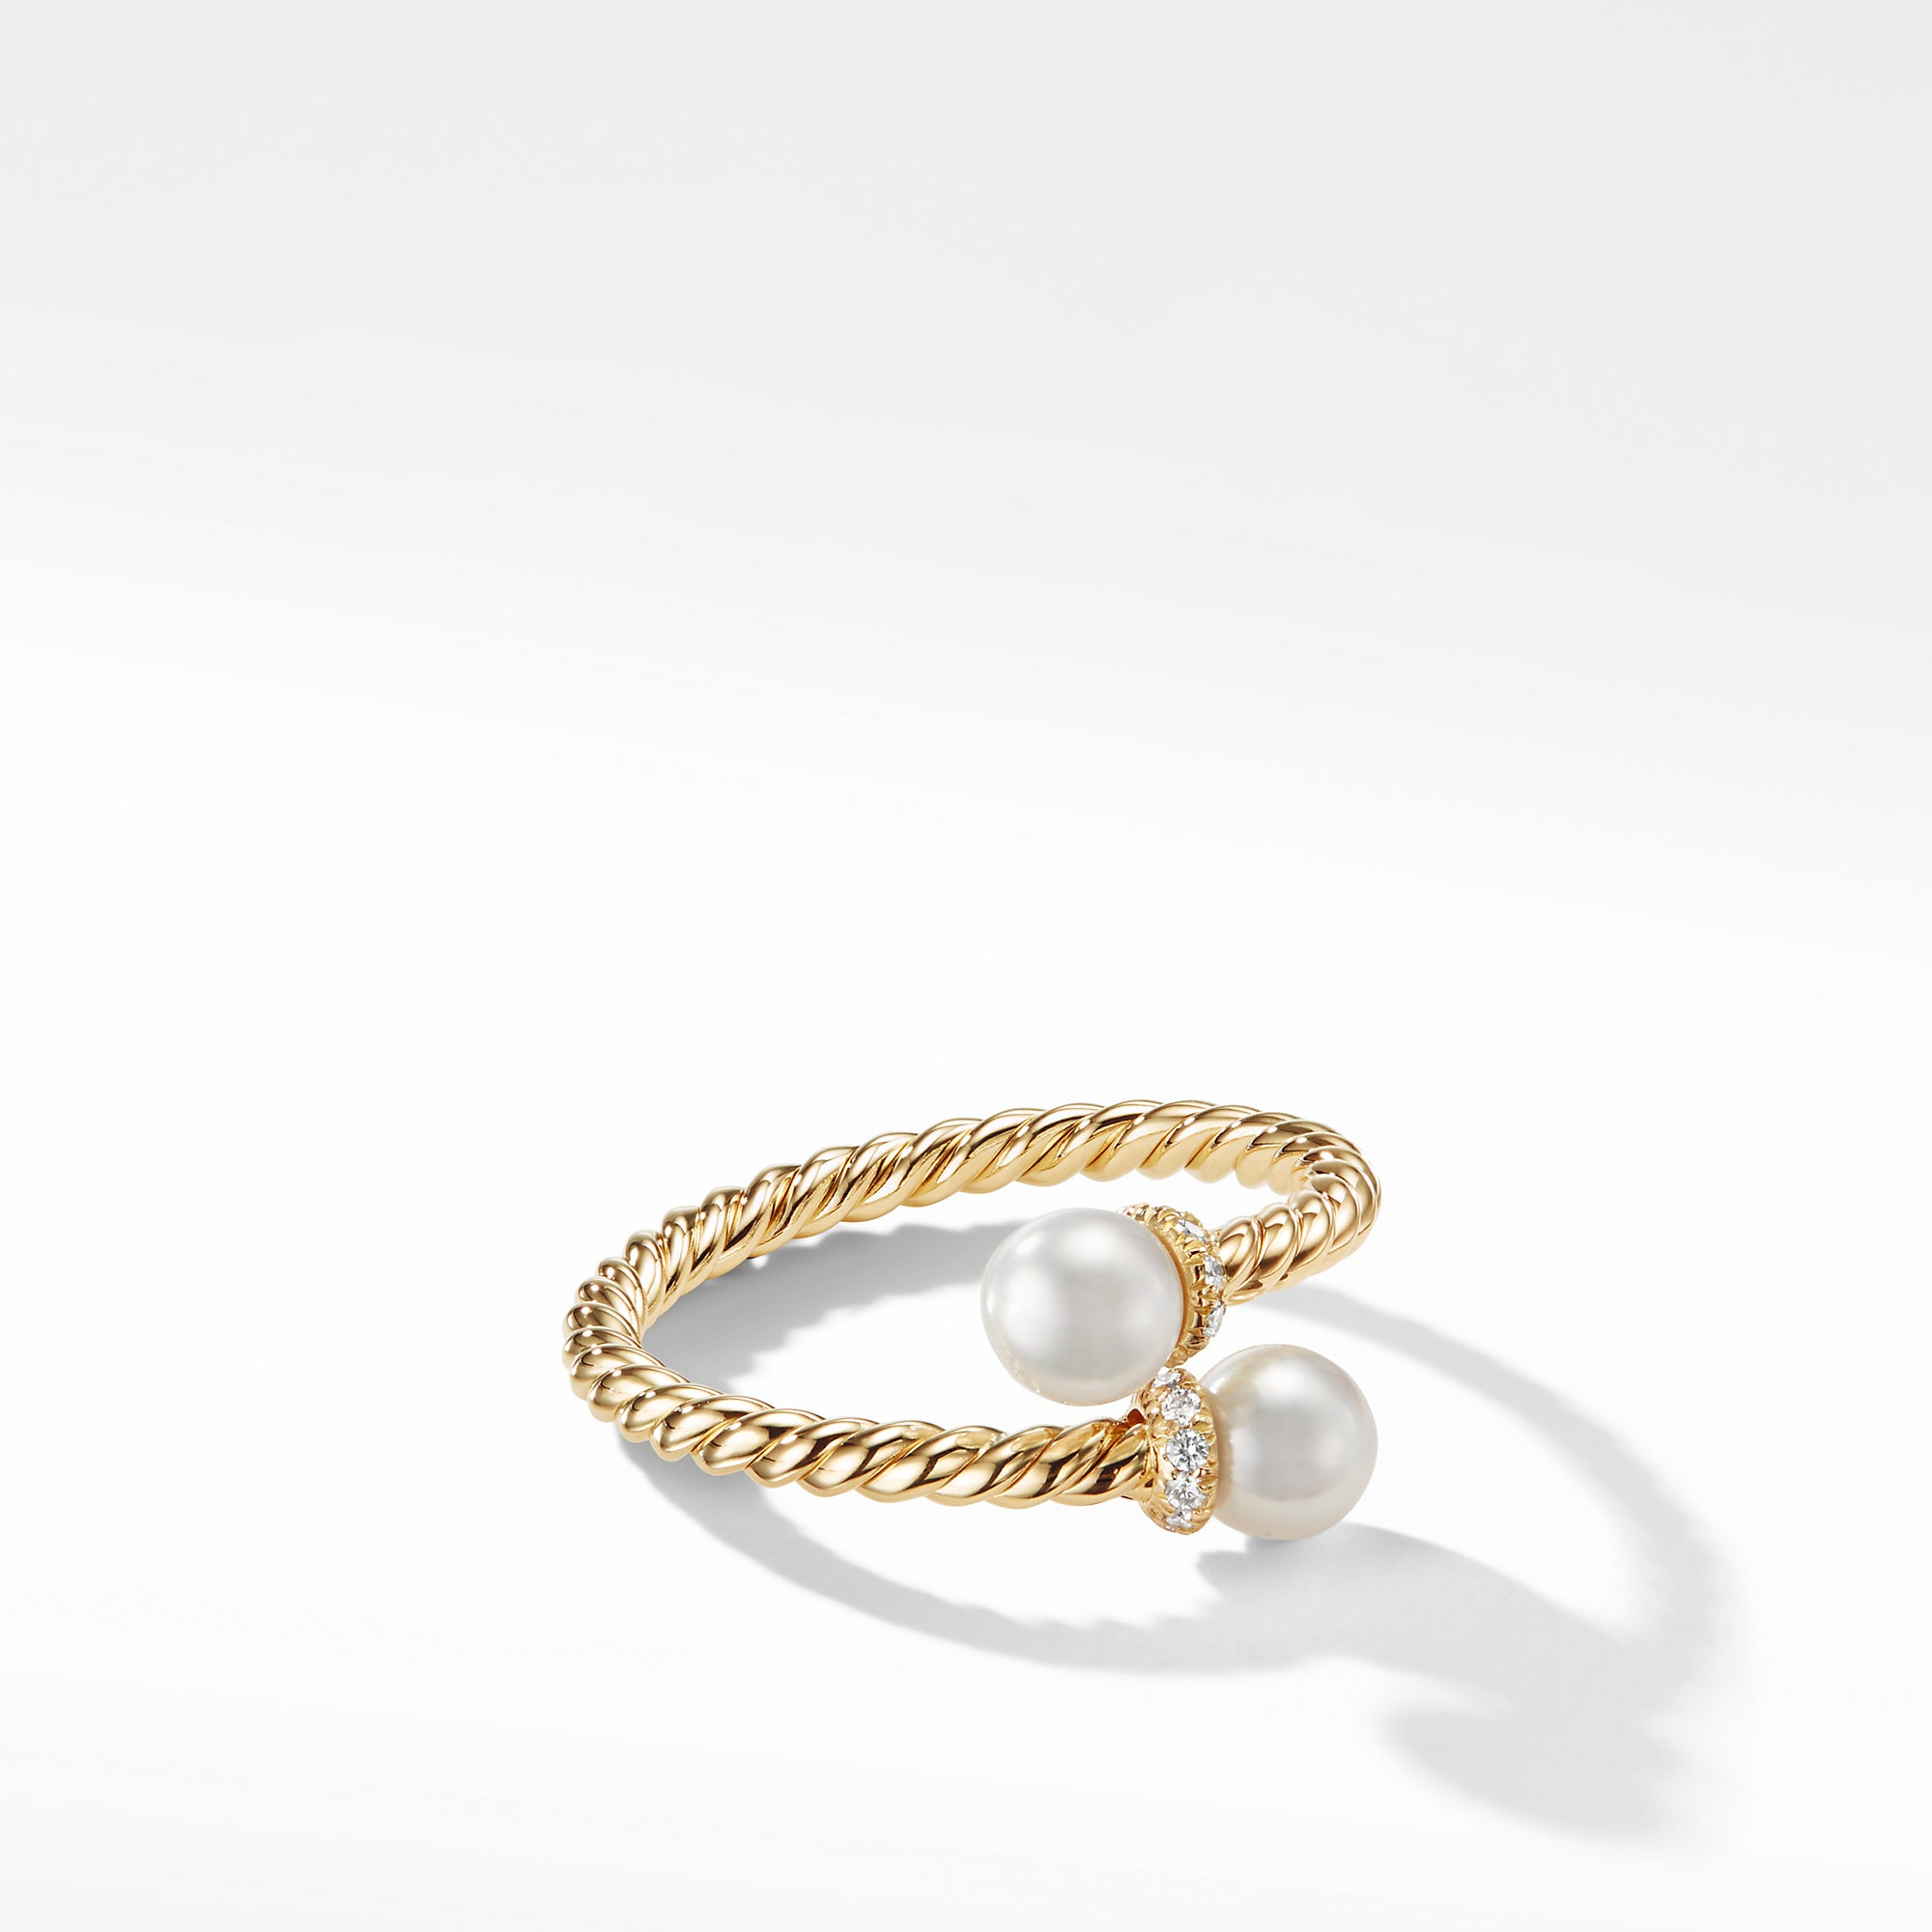 Petite Solari Bypass Ring with Diamonds in 18K Gold